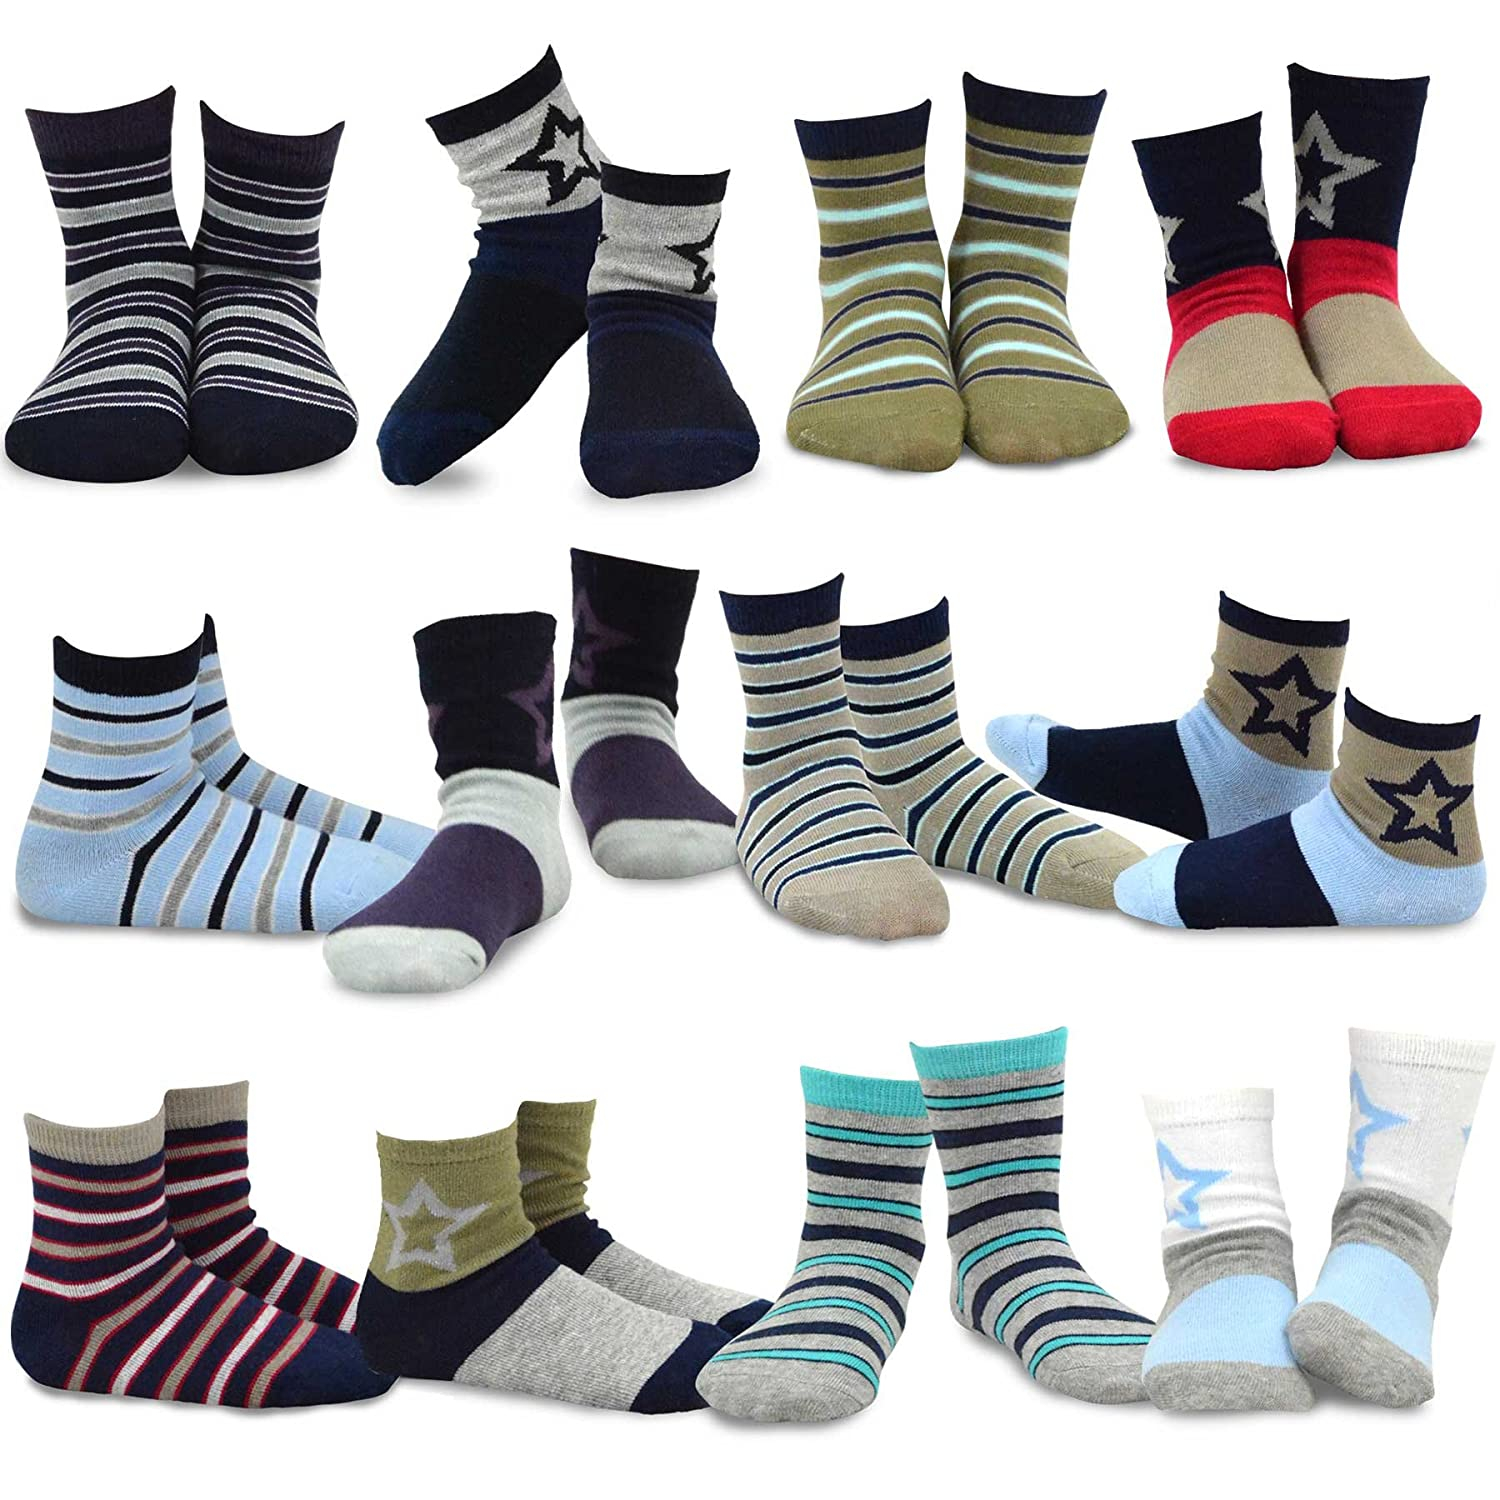 TeeHee Naartjie Kids Boys Cotton Fun Crew Socks 12 Pair Pack